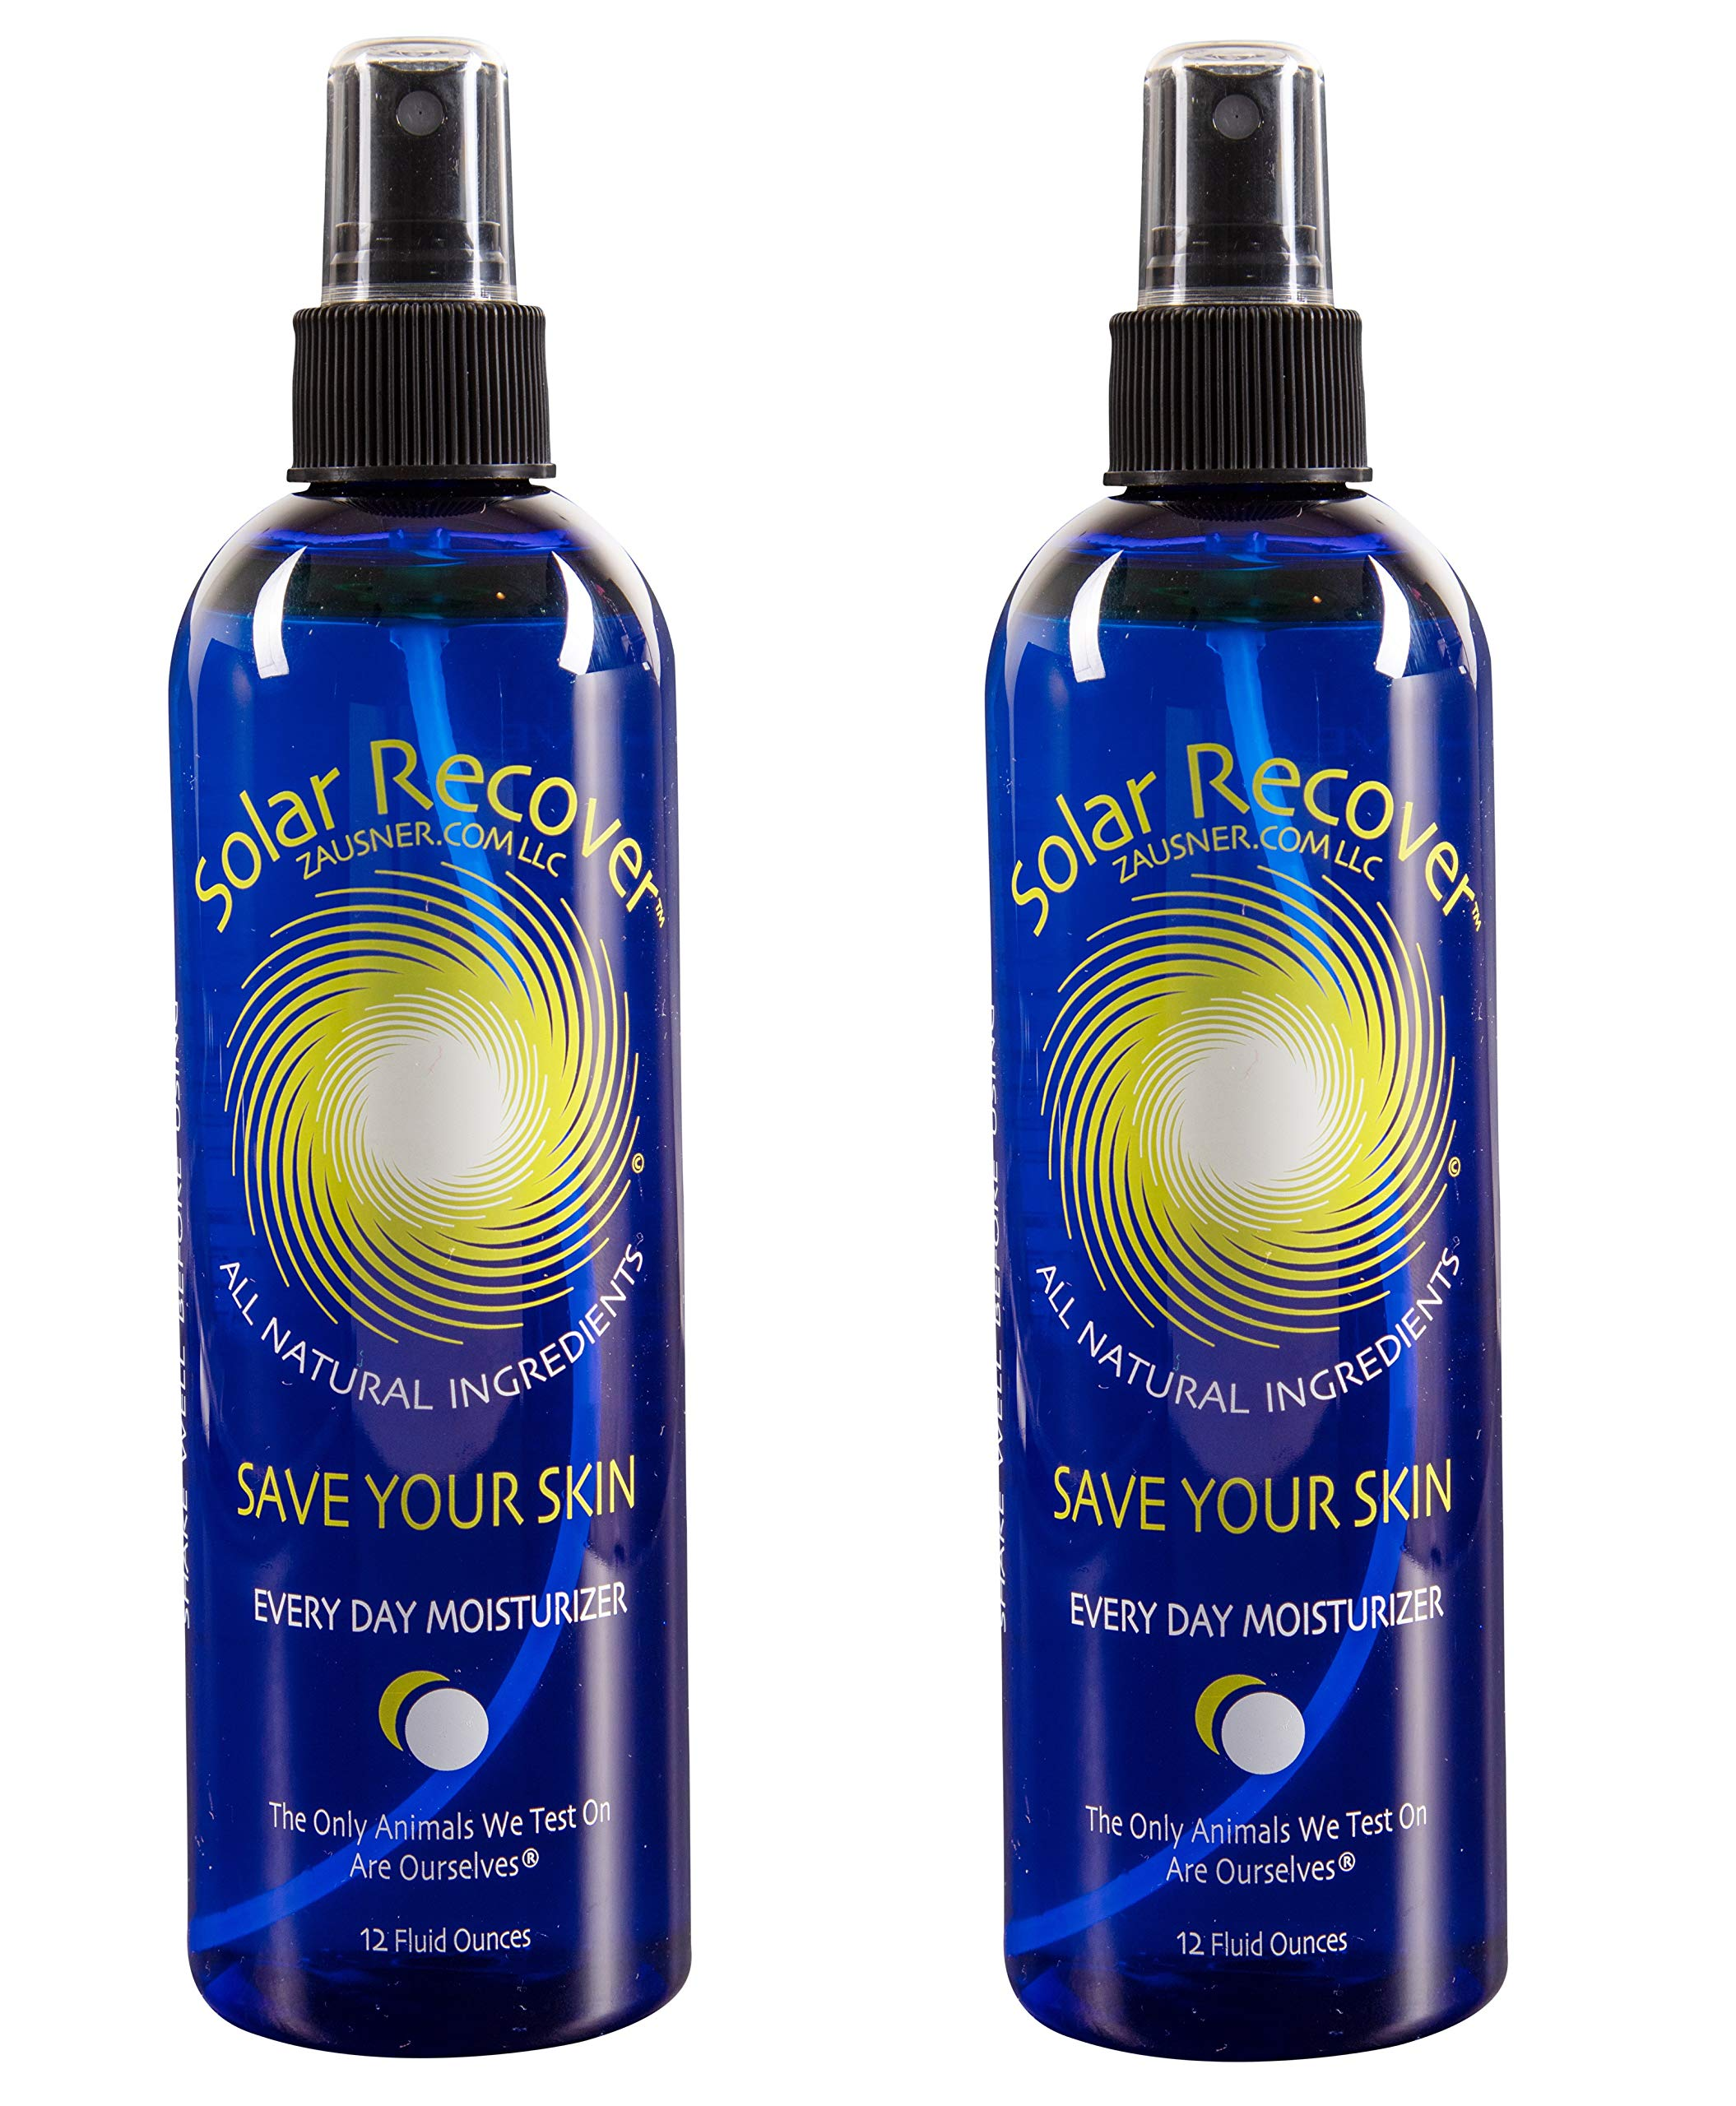 Solar Recover - After Sun Moisturizing Spray 2 Pack - (24 Ounces) - Hydrating Facial and Body Mist - 4920 Sprays of Sunburn Relief With Vitamin E and Calendula by Solar Recover